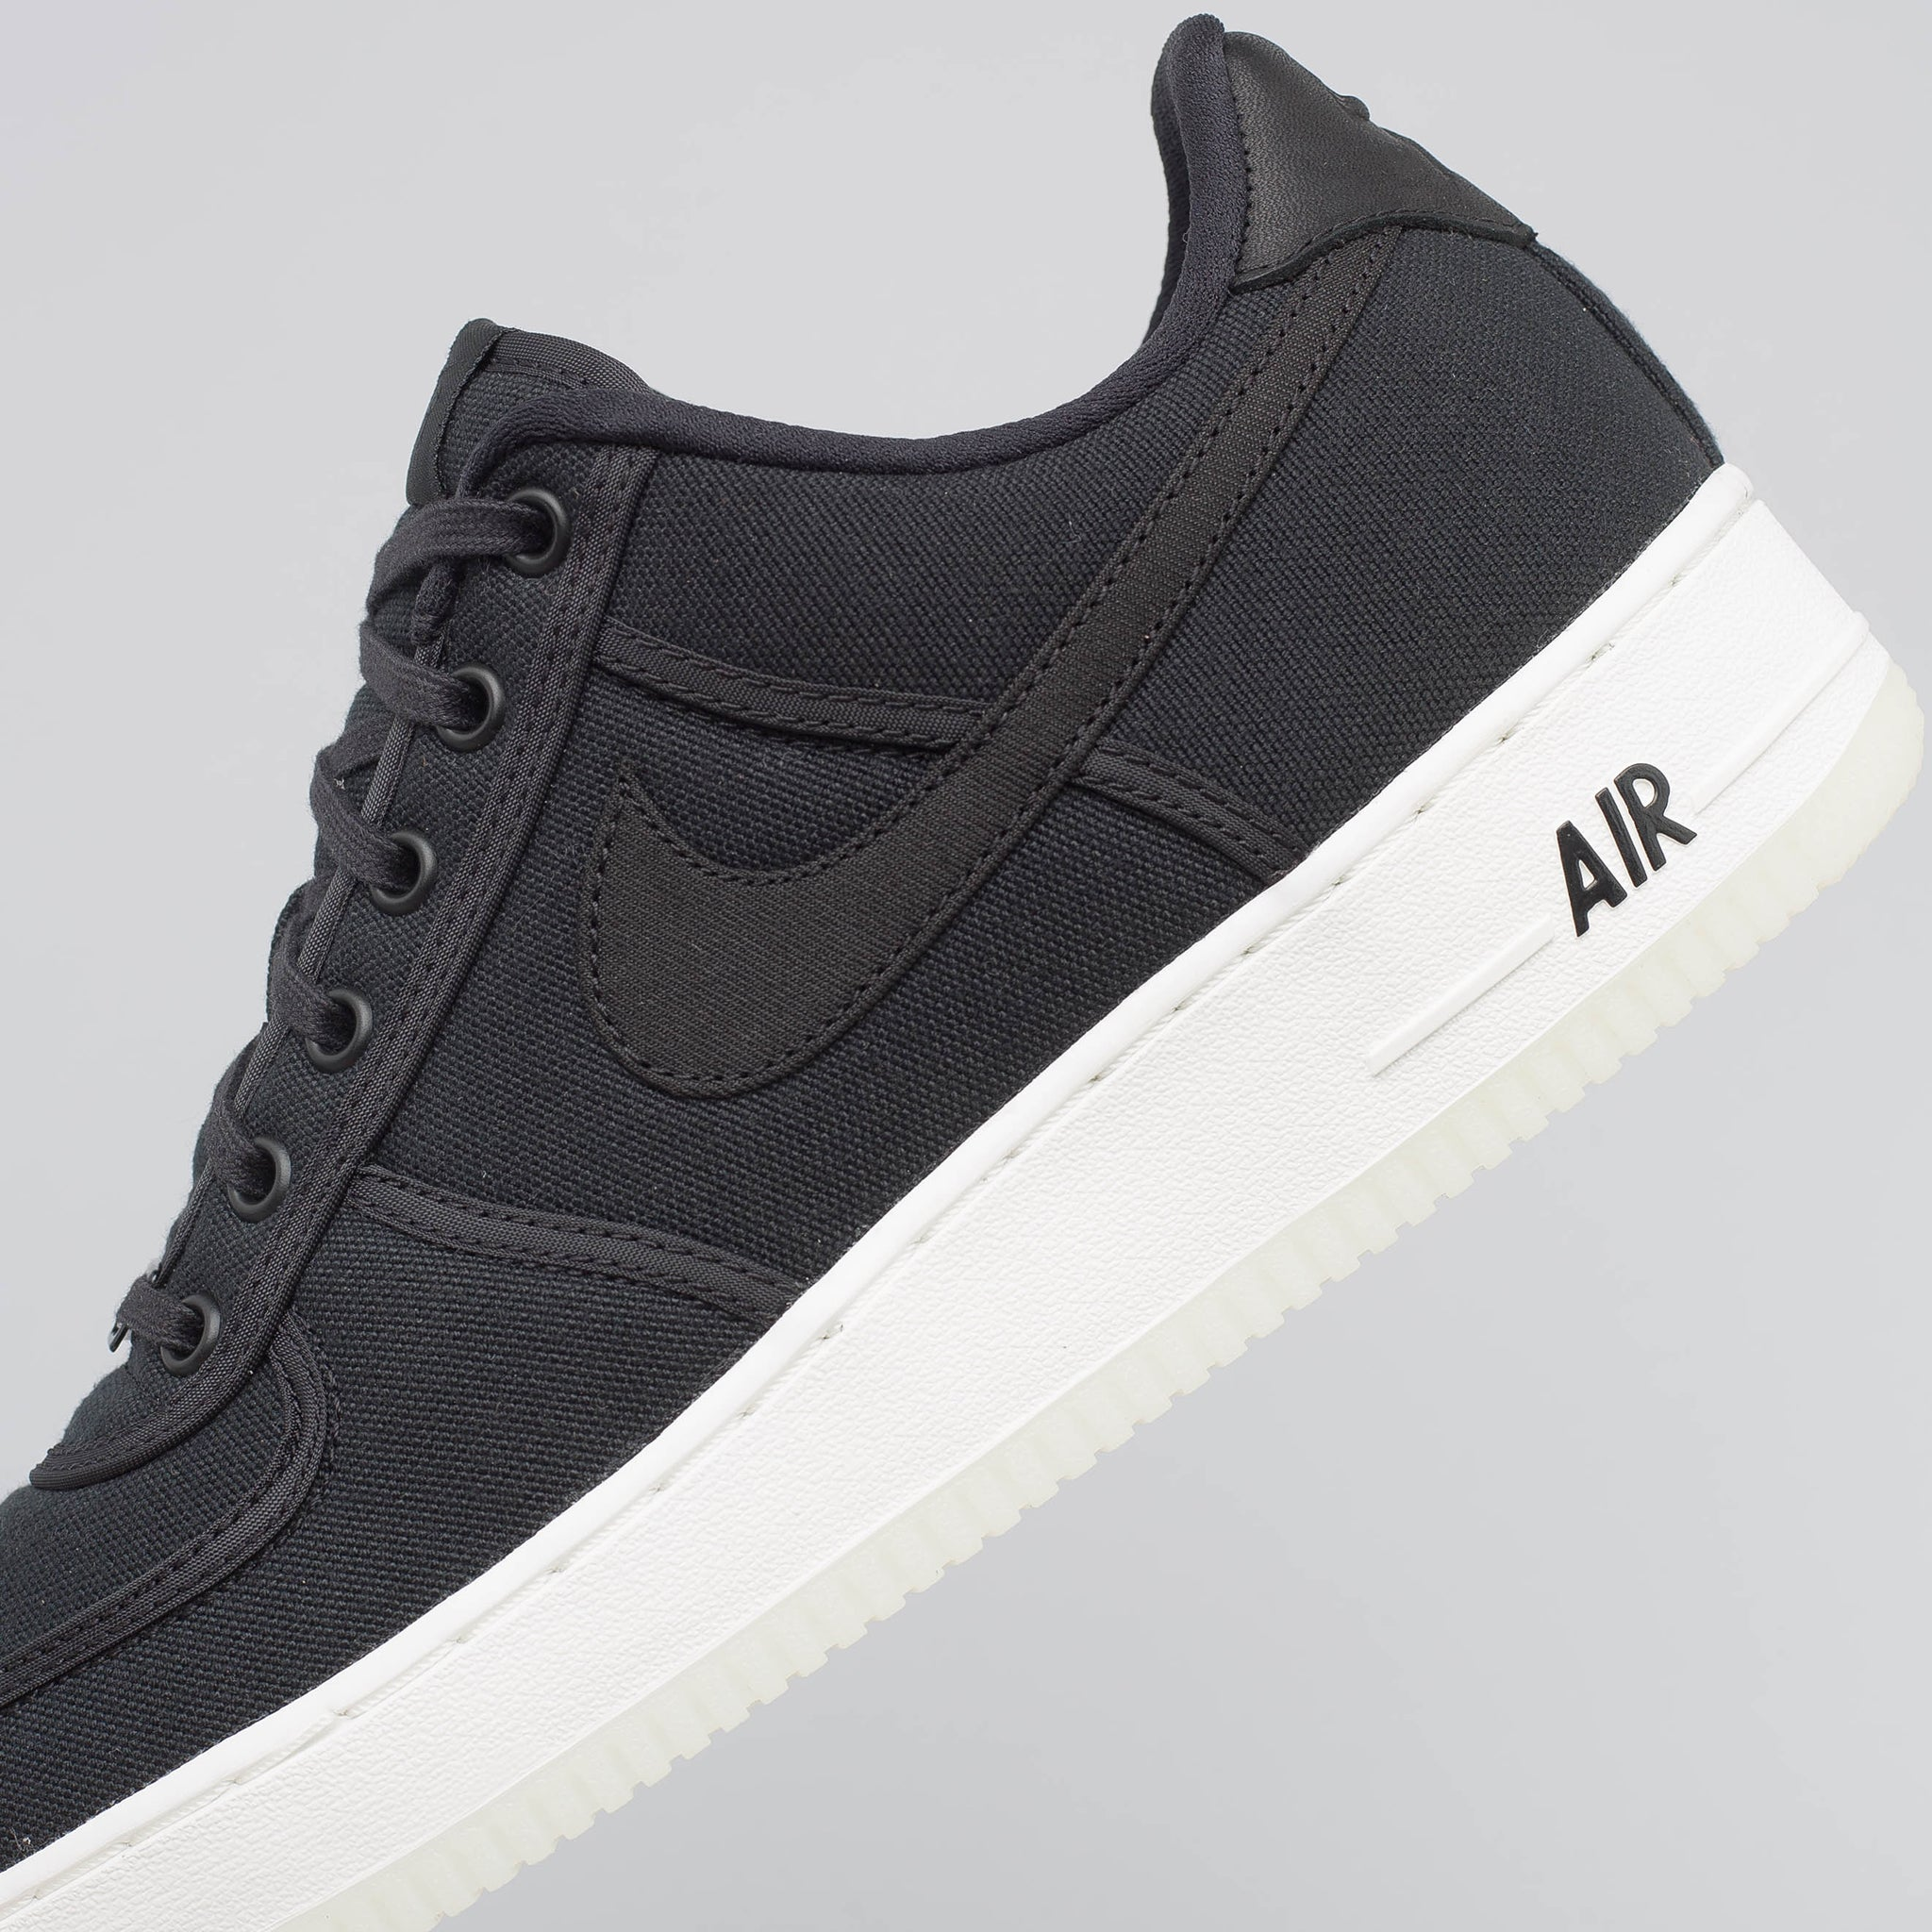 Air Force 1 Low Retro Canvas in Black